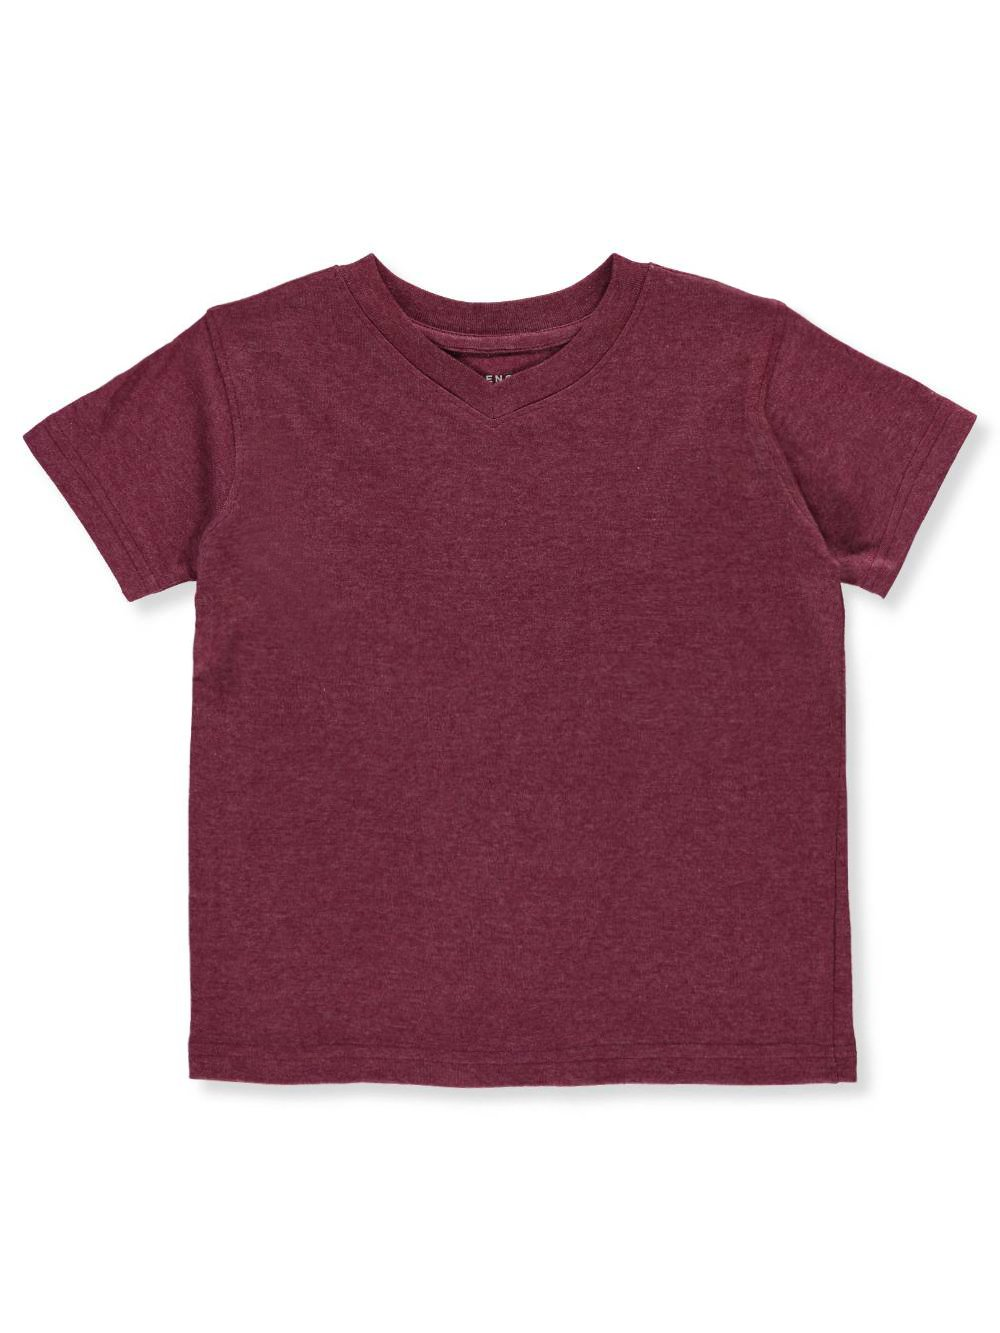 French Toast Little Boys' T-Shirt - deep red, 4 by French Toast (Image #1)